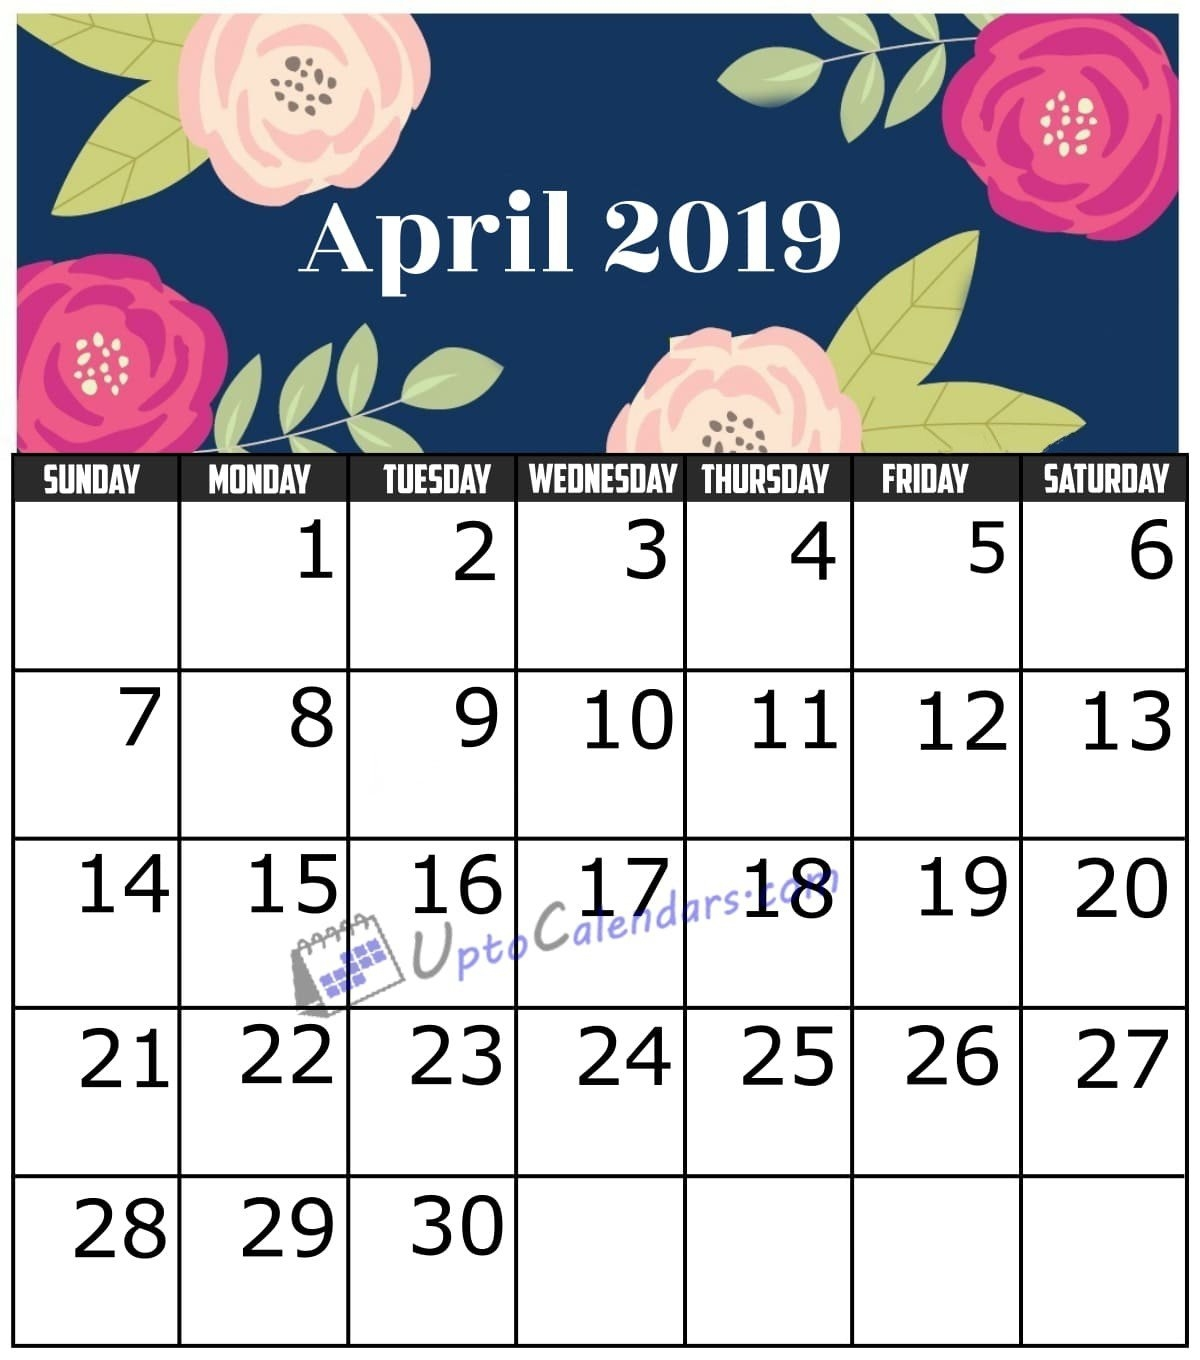 April 2019 Calendar Printable Template With Holidays Pdf Word Excel April 4 2019 Calendar